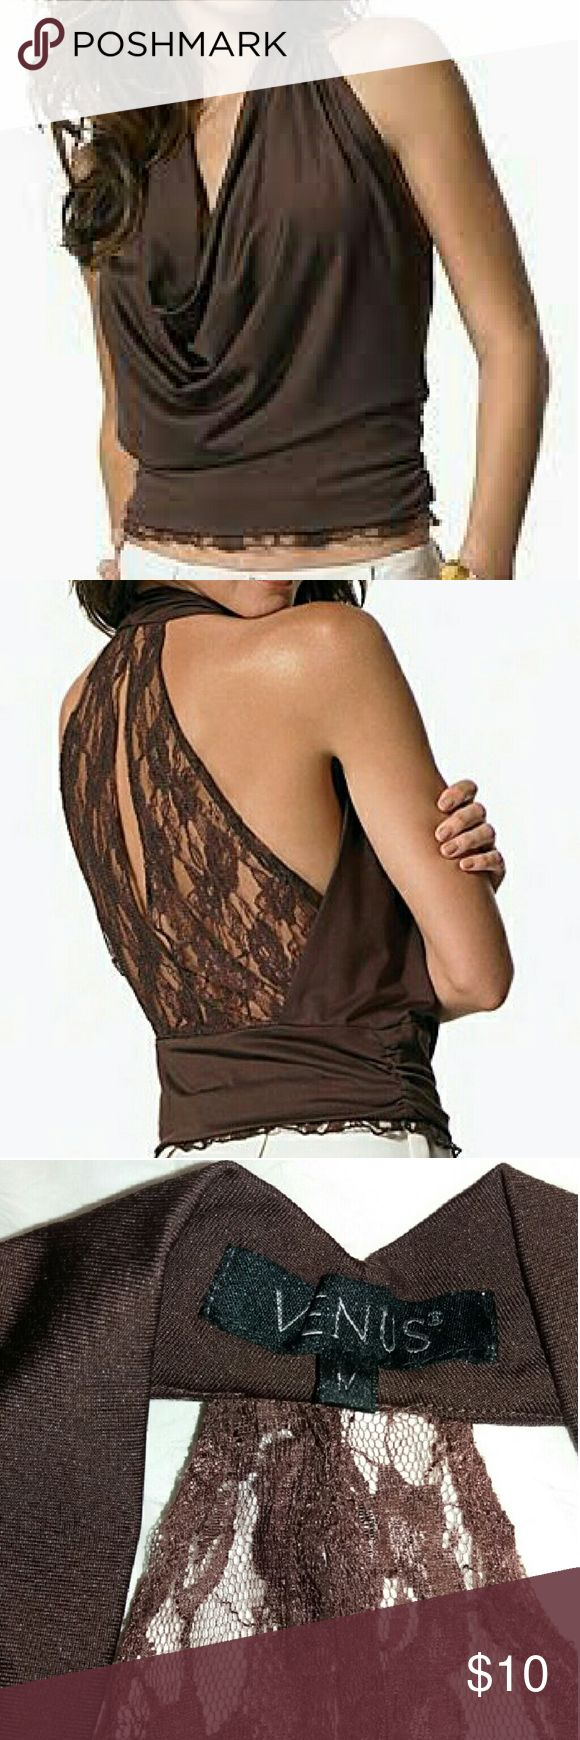 Venus Halter Lace Top - Sexy! Brown, fitted halter with cowl-neck and lace-design on the back. Bottom is trimmed with lace all around. Bought from the Venus clothing website. Wore only once... clean & in excellent condition! Size M. Fabric is 95% Poly, 5% spandex. Venus Tops Blouses